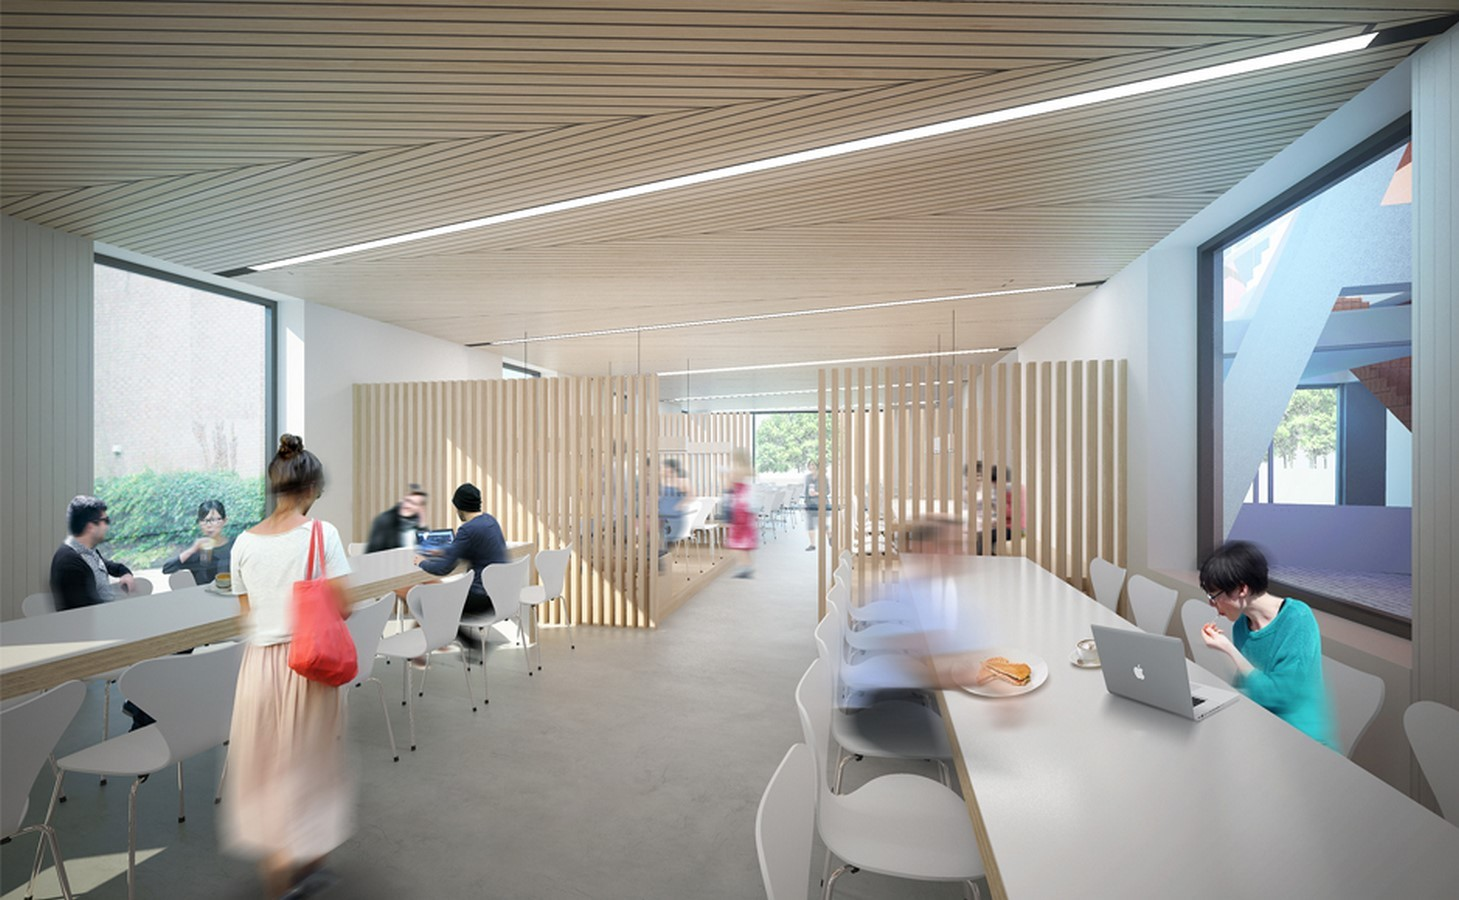 Florey Building, Queens College, Oxford by Avanti Architects - Sheet1